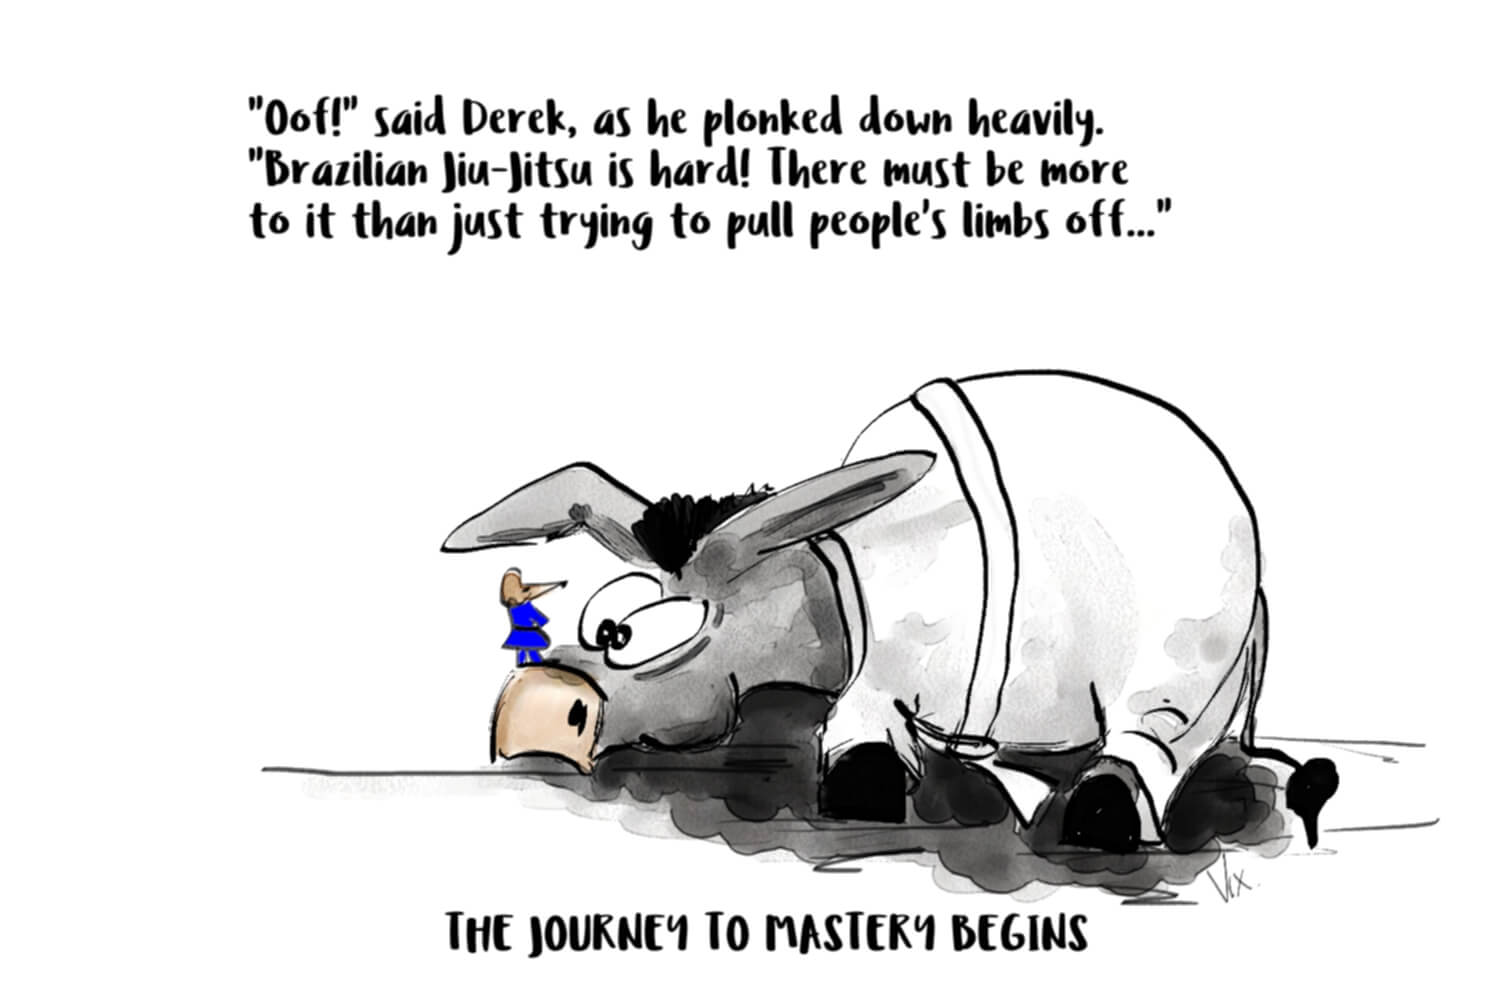 Derek the donkey thinks learning BJJ is hard